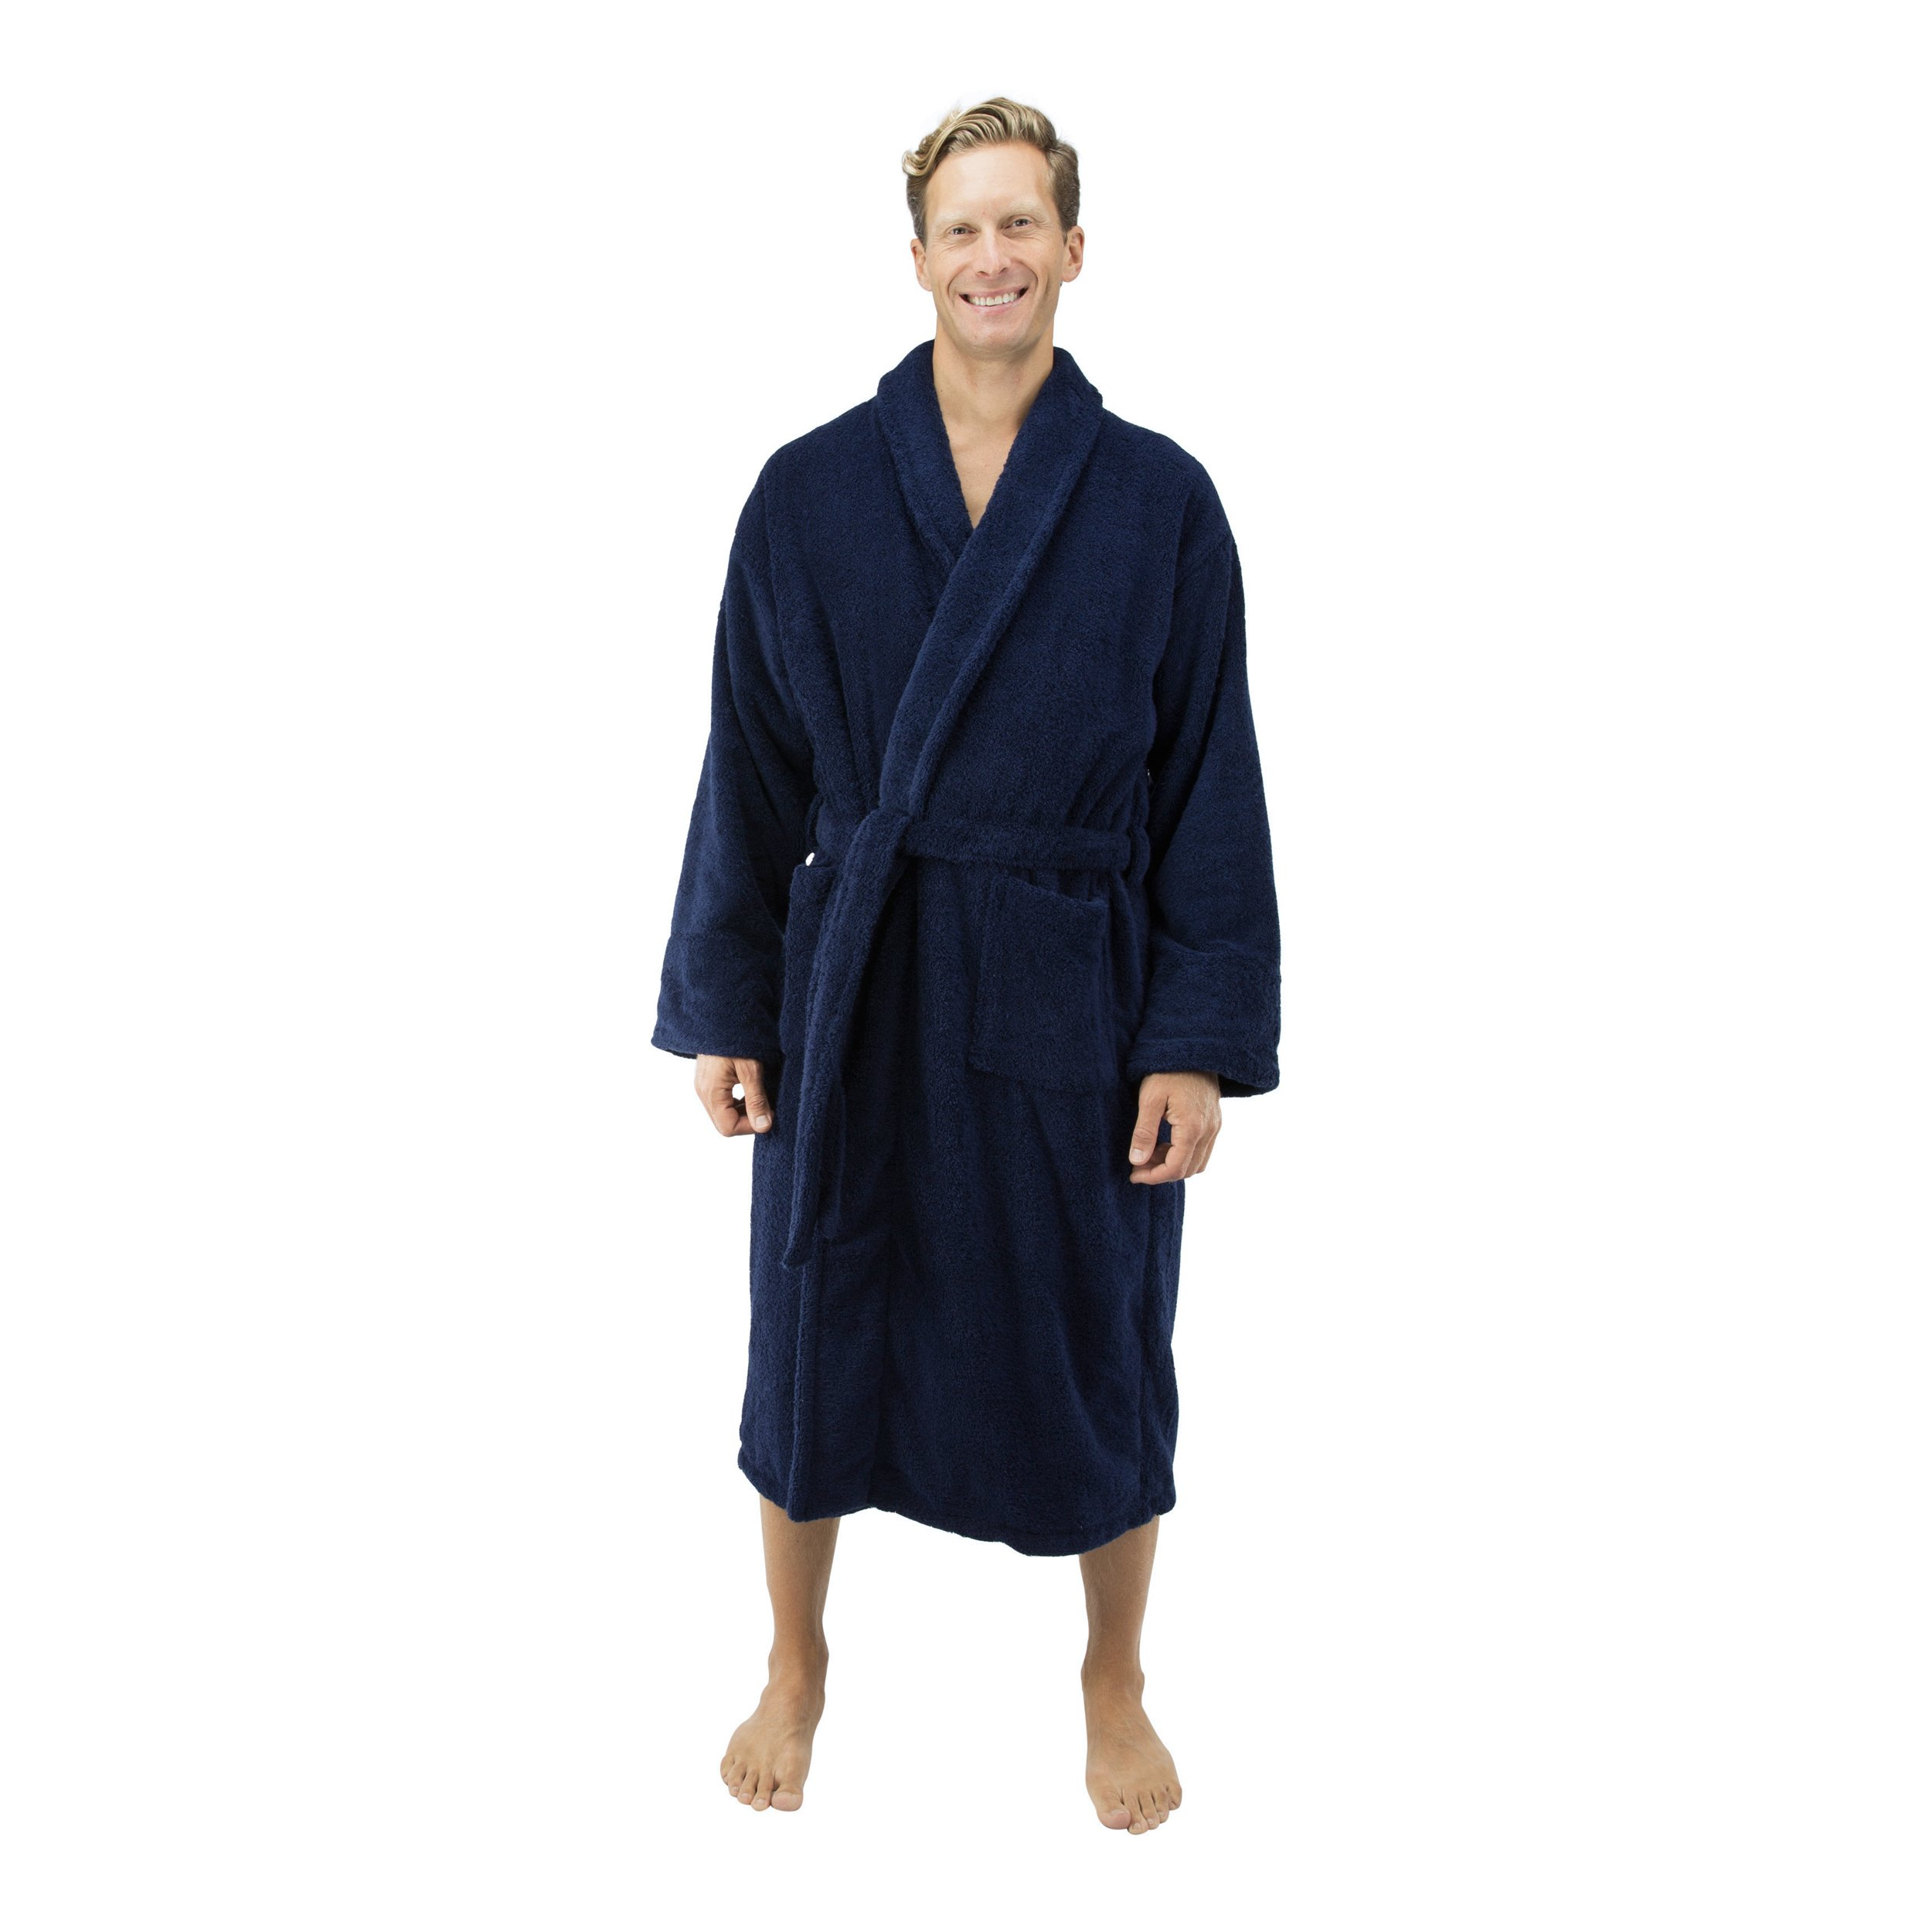 Comfy Robes Personalized Men's Deluxe 20 oz. Turkish Terry Bathrobe, L/XL (OSFM) Tall Navy